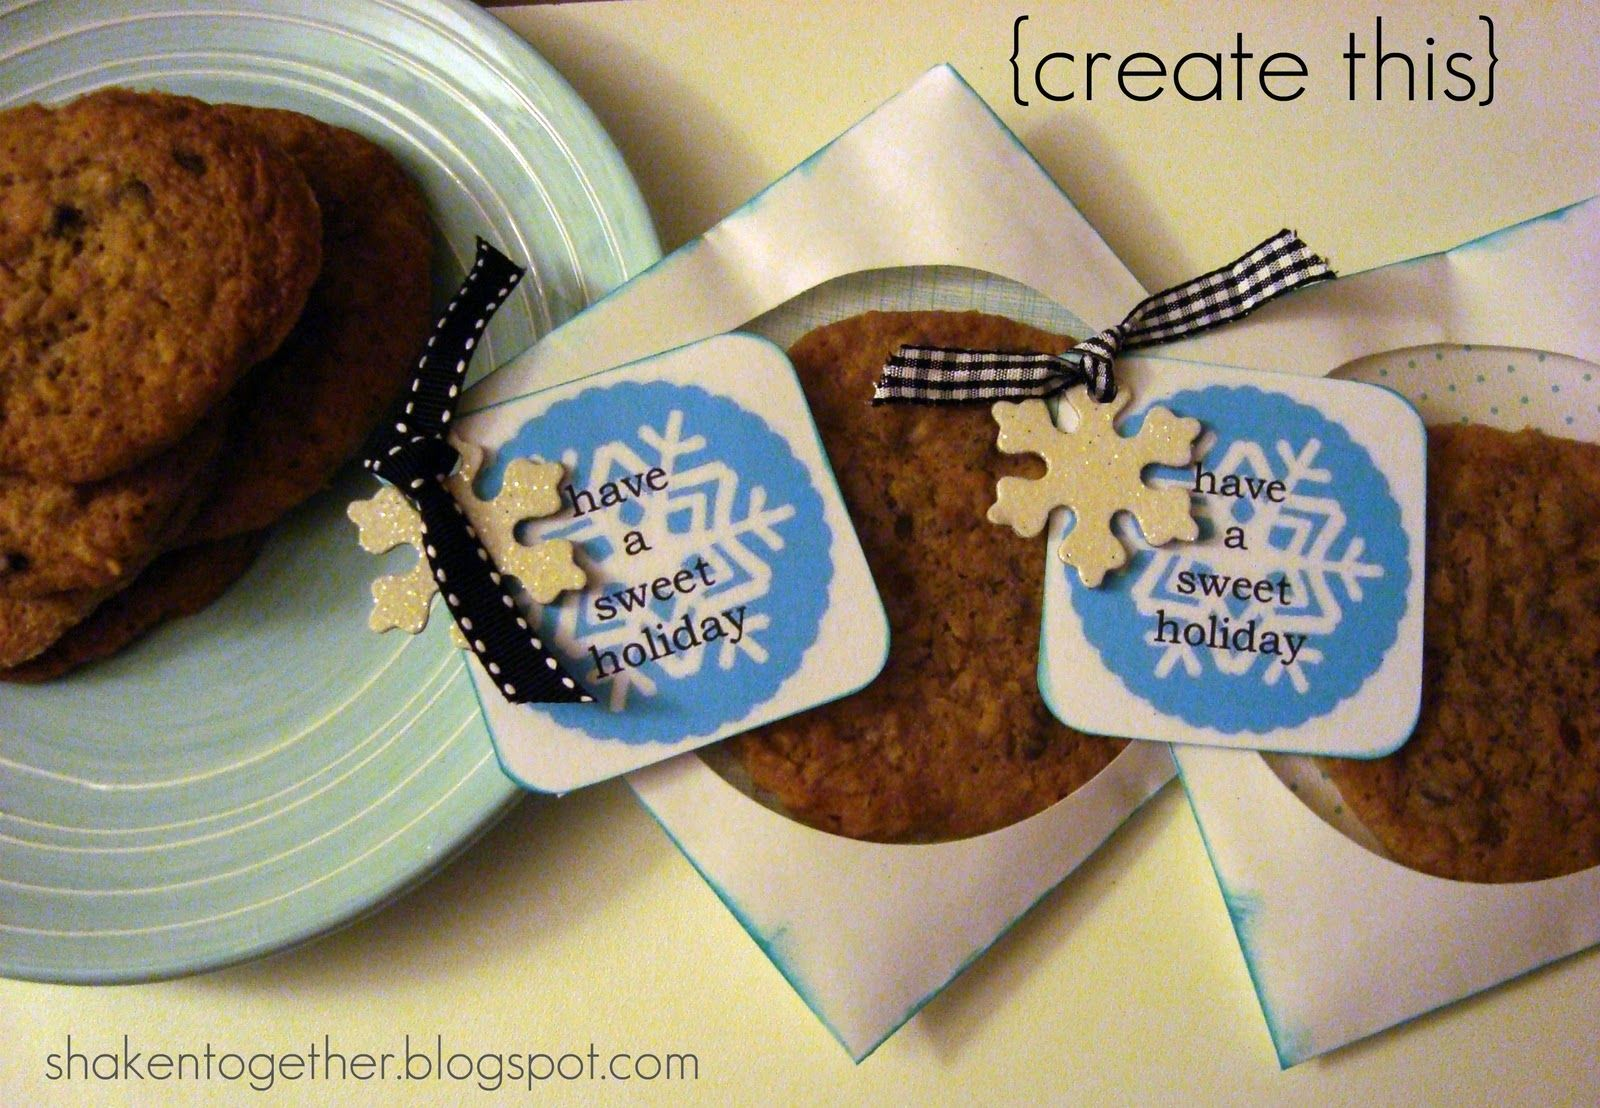 Pin on Gift ideas for Large Groups